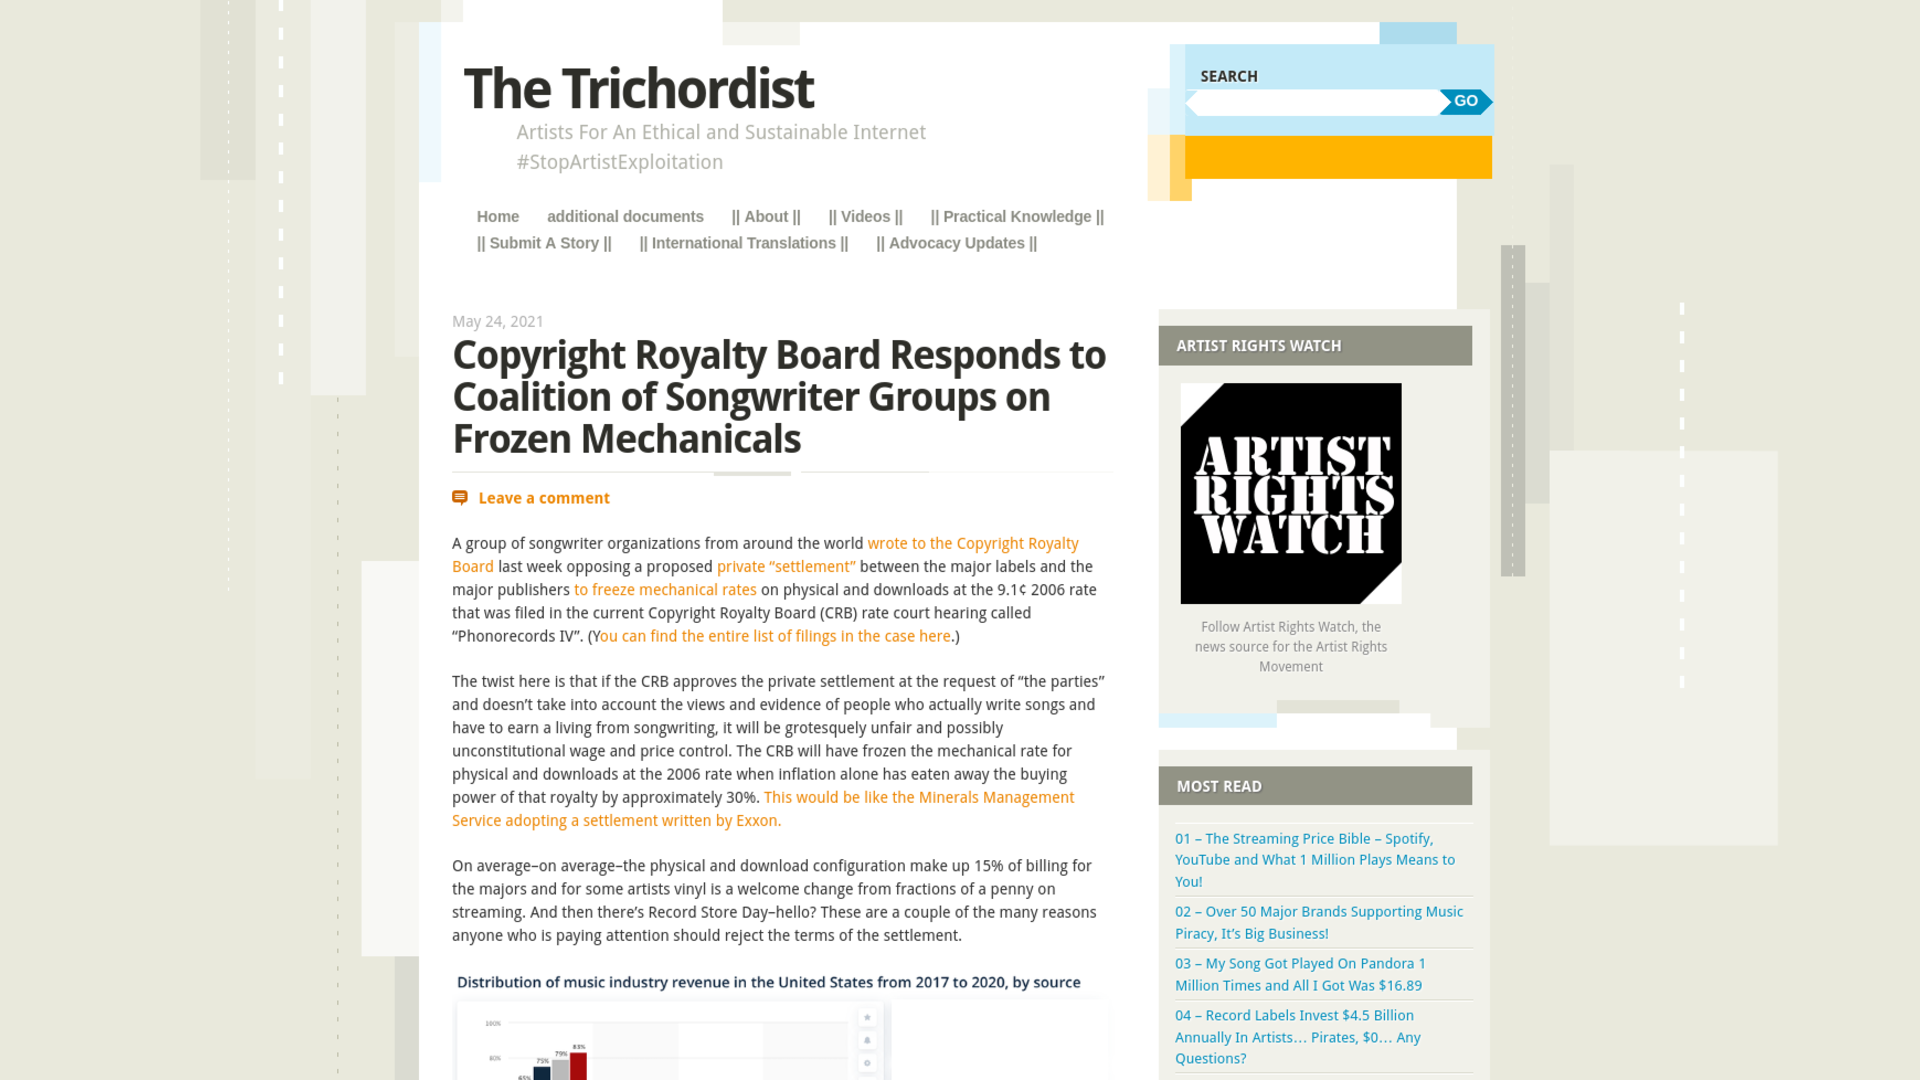 Fairness Rocks News Copyright Royalty Board Responds to Coalition of Songwriter Groups on Frozen Mechanicals